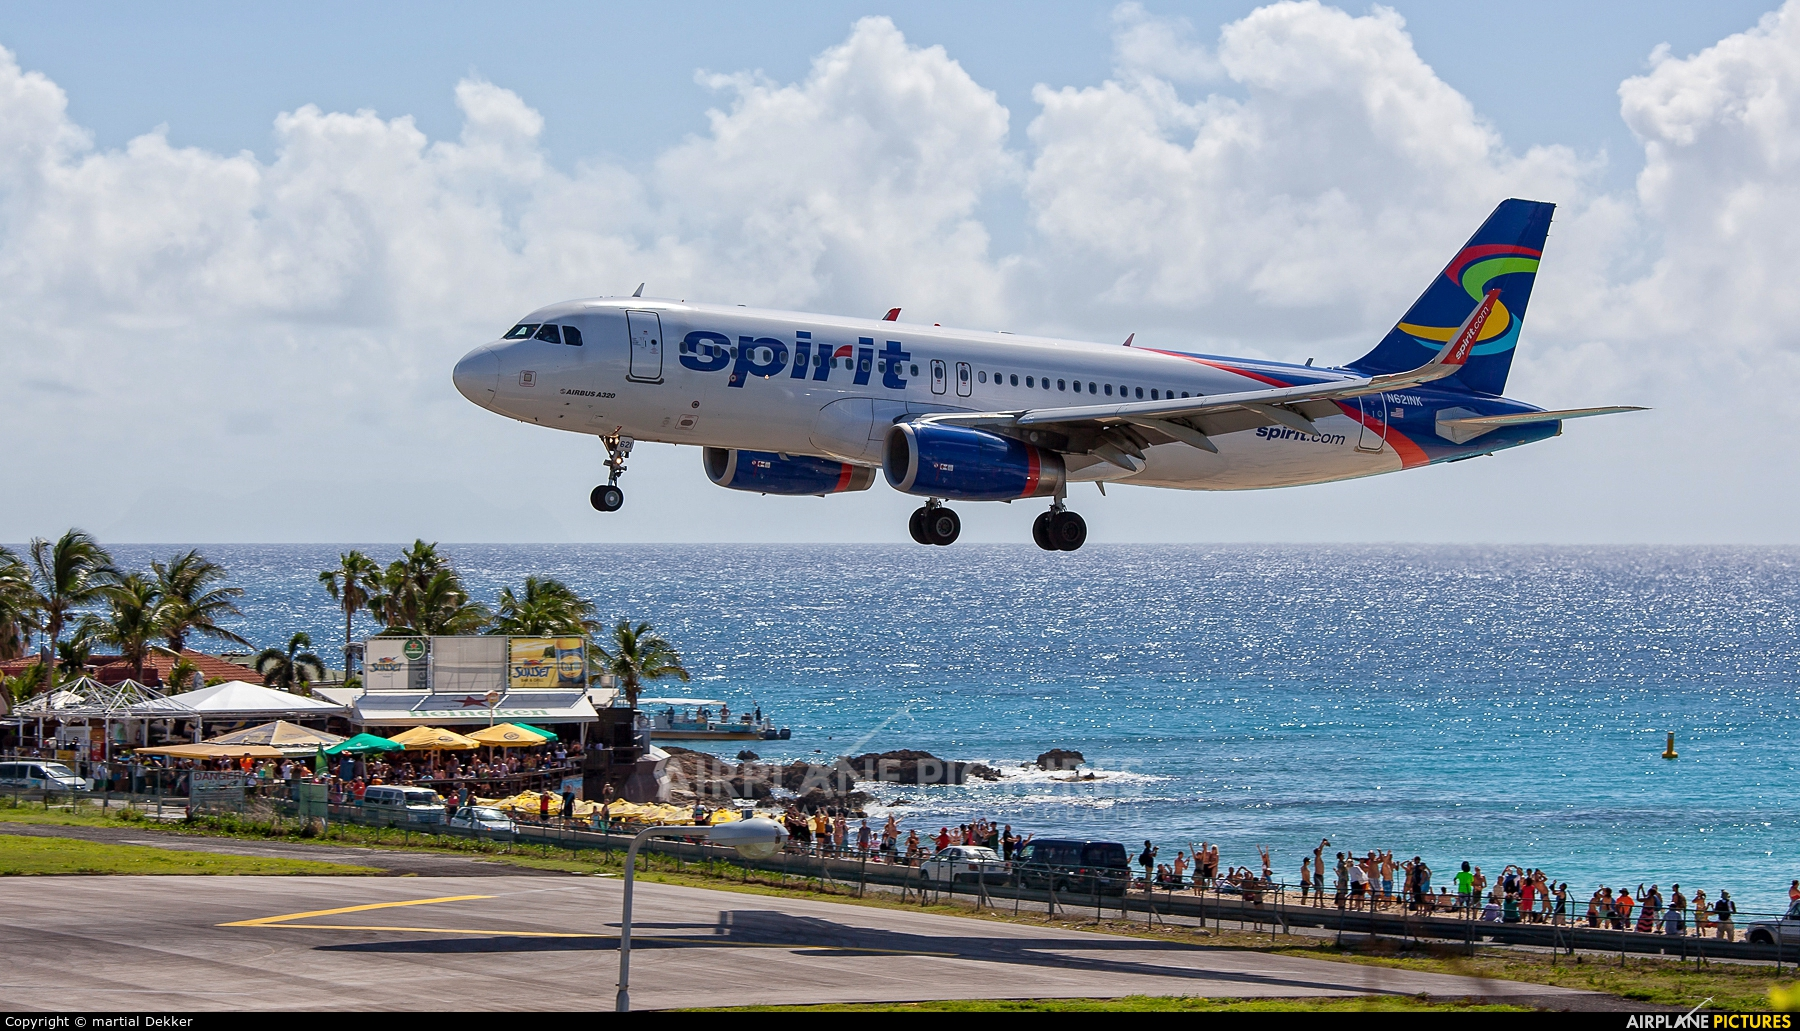 An American ultra-low-cost airline – Spirit Airlines operates in the United States and in the Caribbean, Mexico, Latin America, and South America. Cheapflightsfares makes your flight booking procedure simpler and faster as we have got some really amazing deals with Spirit Airlines at prices that you could have never imagined.4/4().